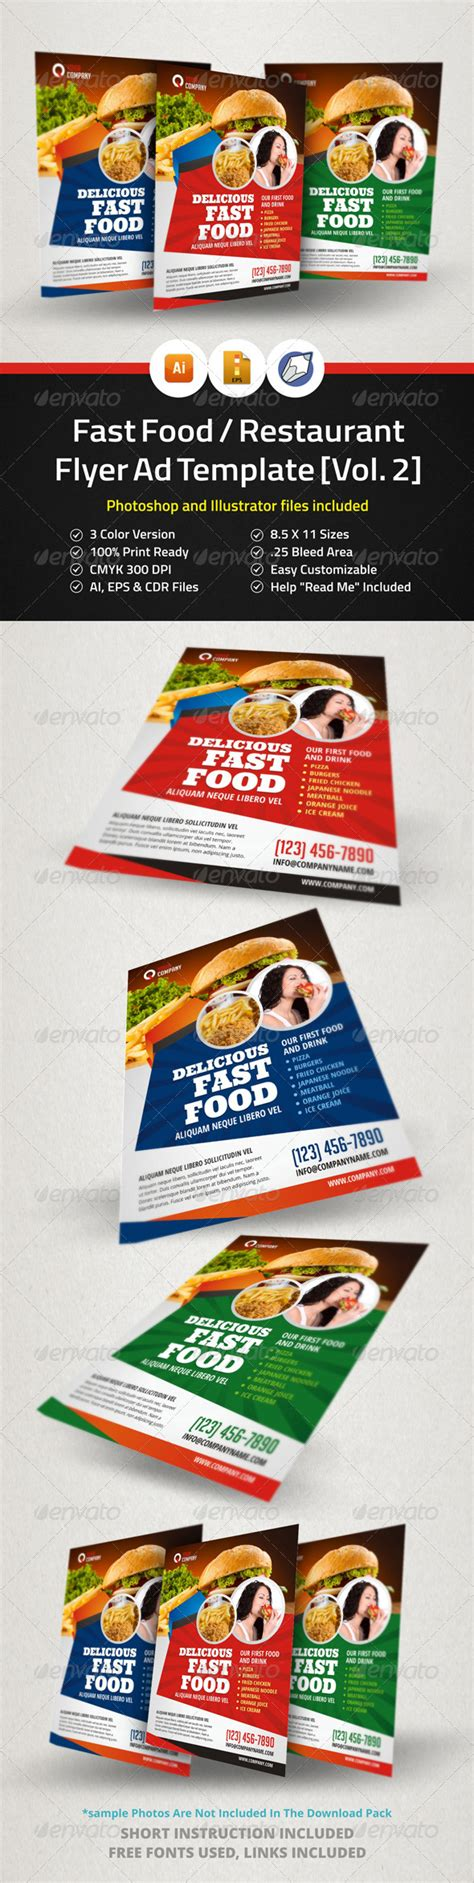 templates flyers corel fast food restaurant flyer ad template vol 2 graphicriver